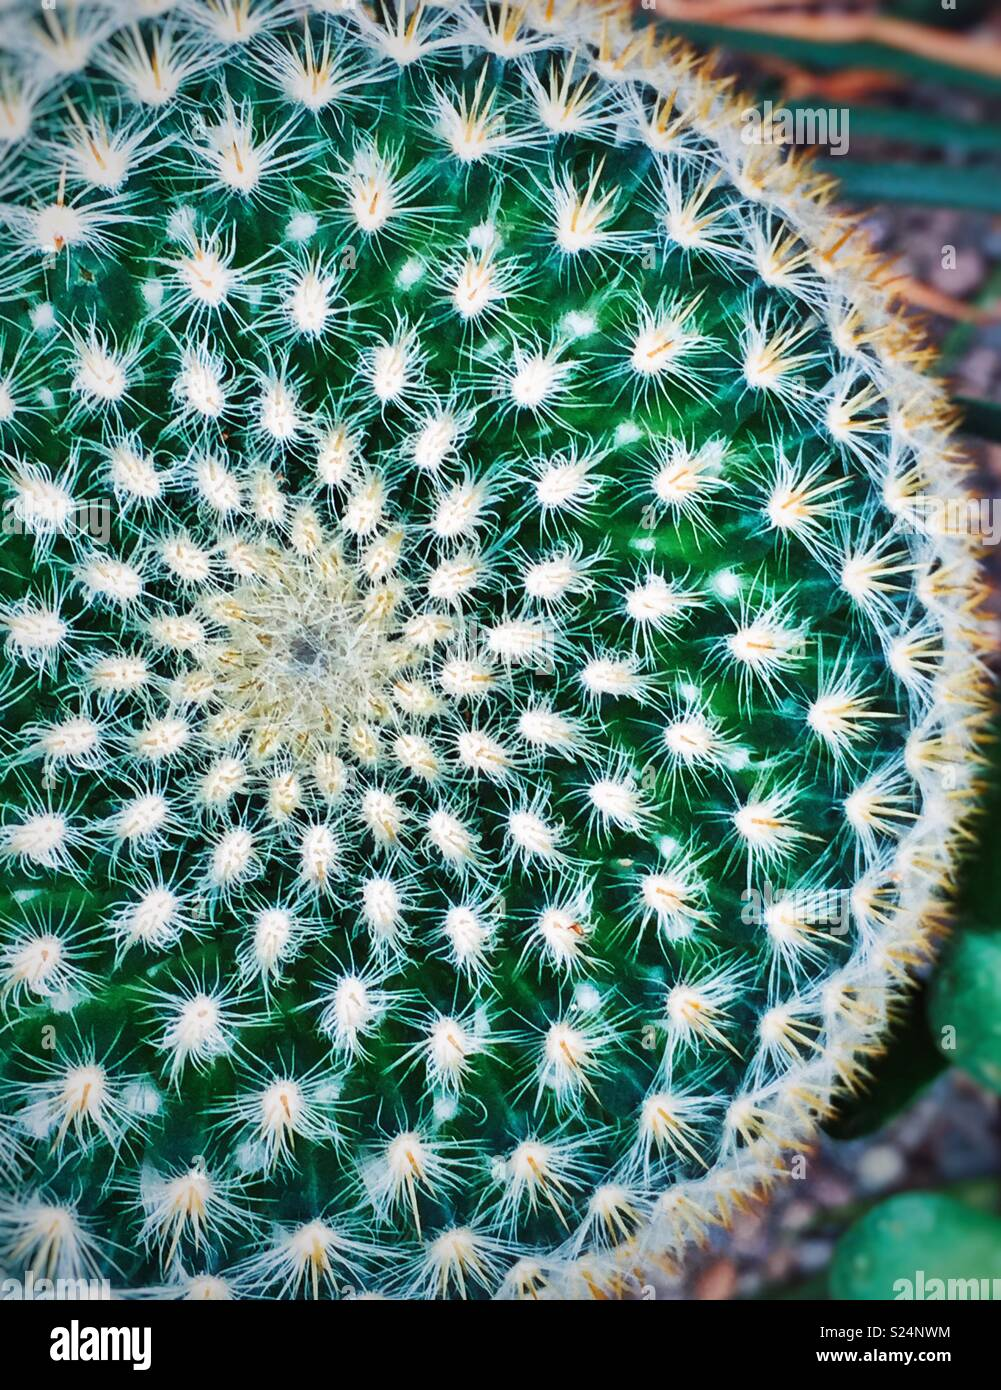 Radial spiral symmetry top view of a cactus plant - Stock Image